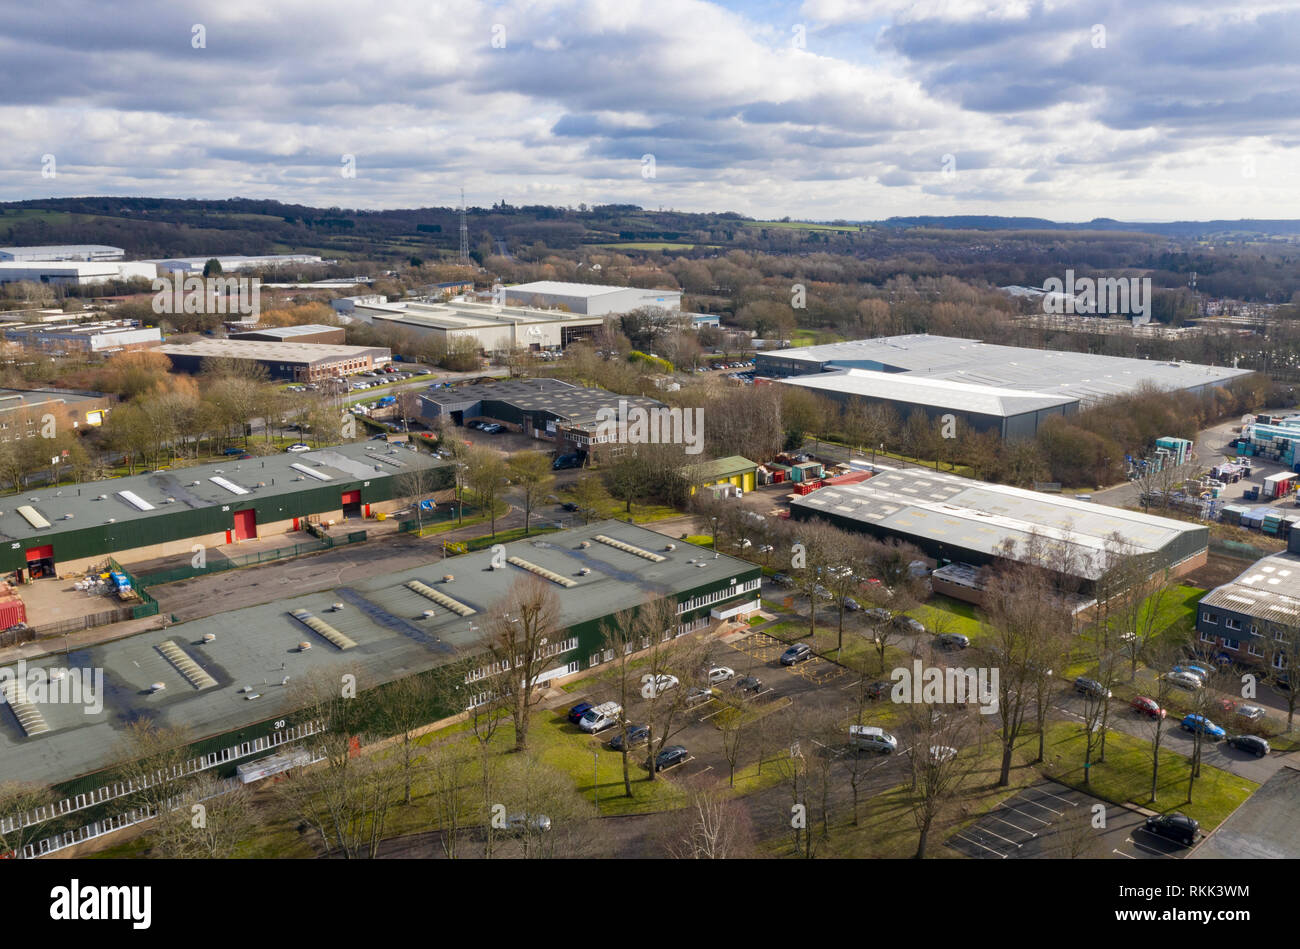 An aerial view of a typical Industrial Estate on the outskirts of a British Town in Worcestershire. - Stock Image